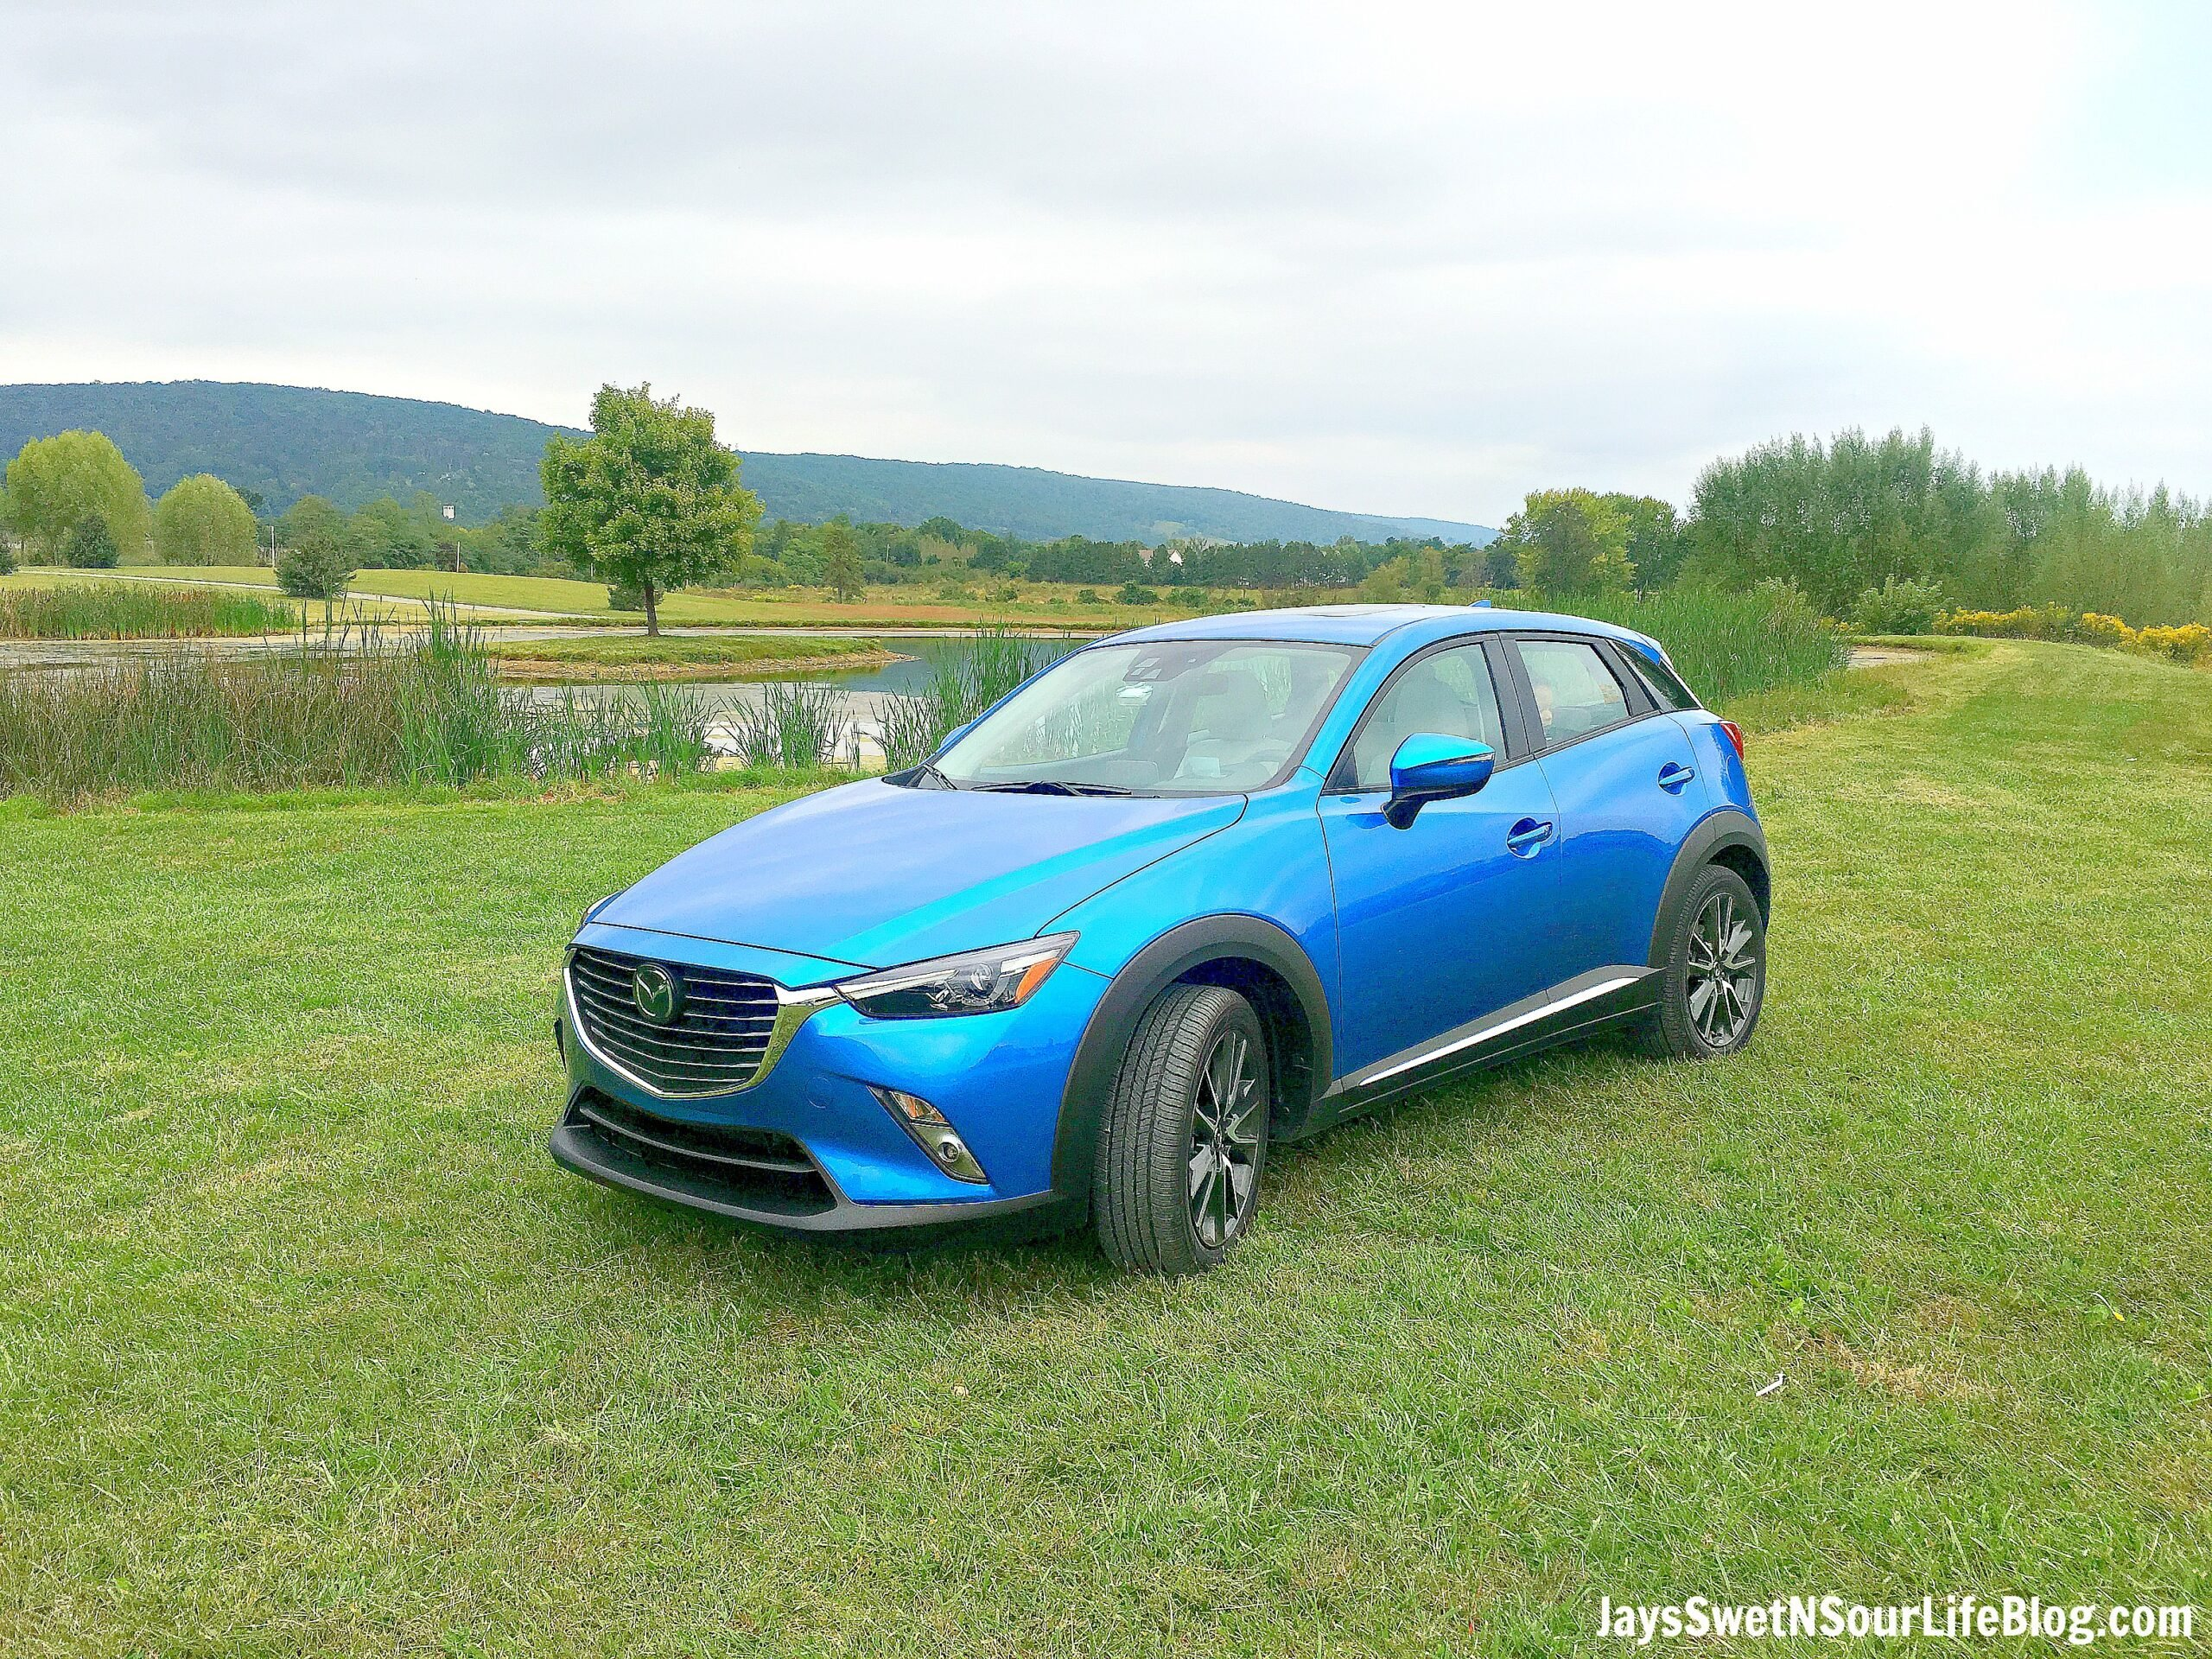 10 Reasons Why I Love The 2017 Mazda CX-3 Grand Touring AWD